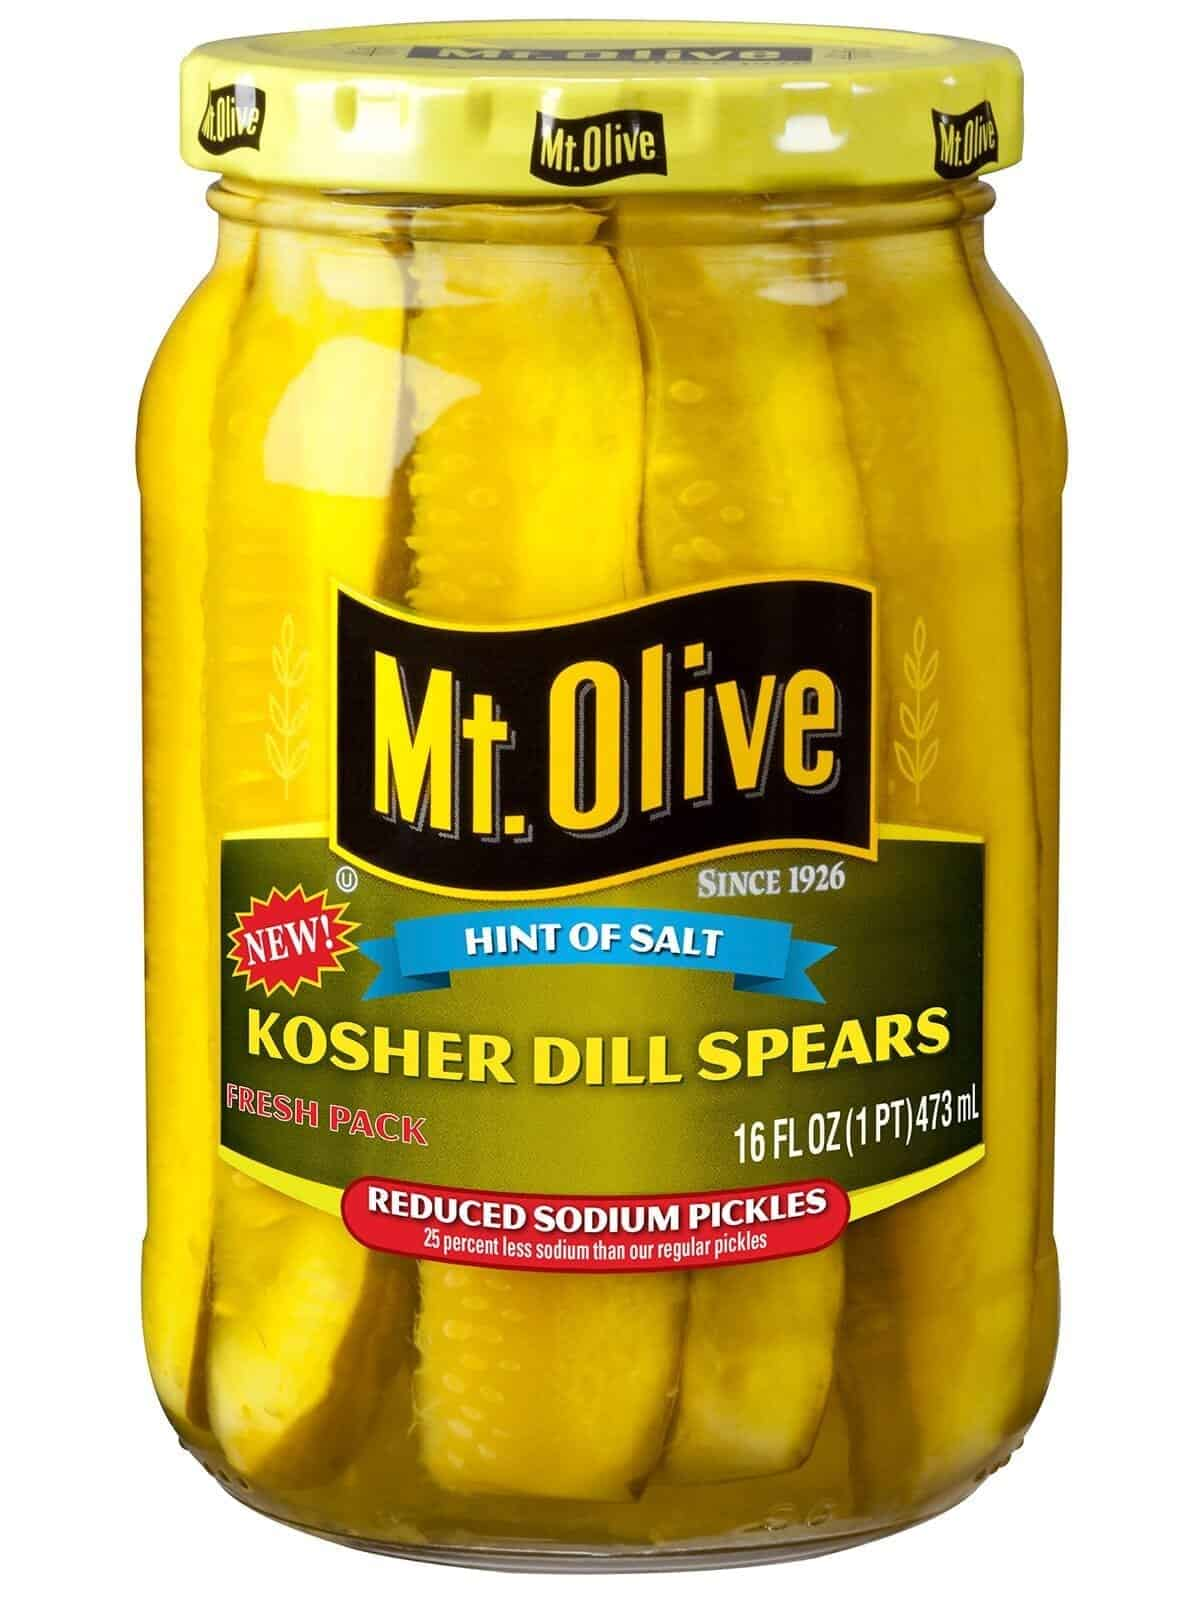 Mt. Olive Hint of Salt Kosher Dill Spears (Reduced Sodium)